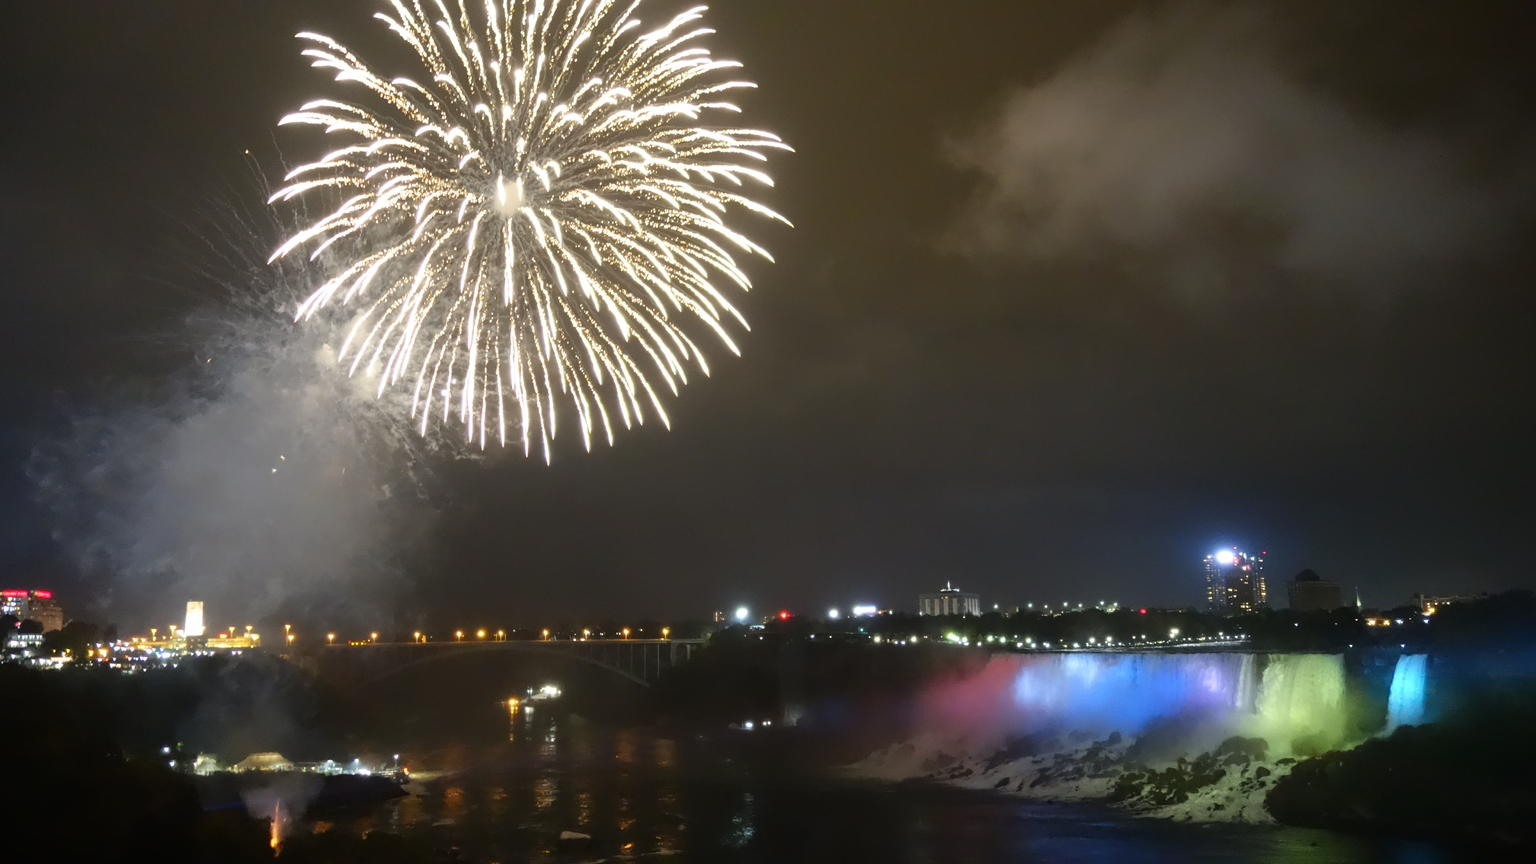 MÁS FOTOS, Niagara Falls Day and Evening Tour With Boat Cruise and Optional Fallsview Dinner